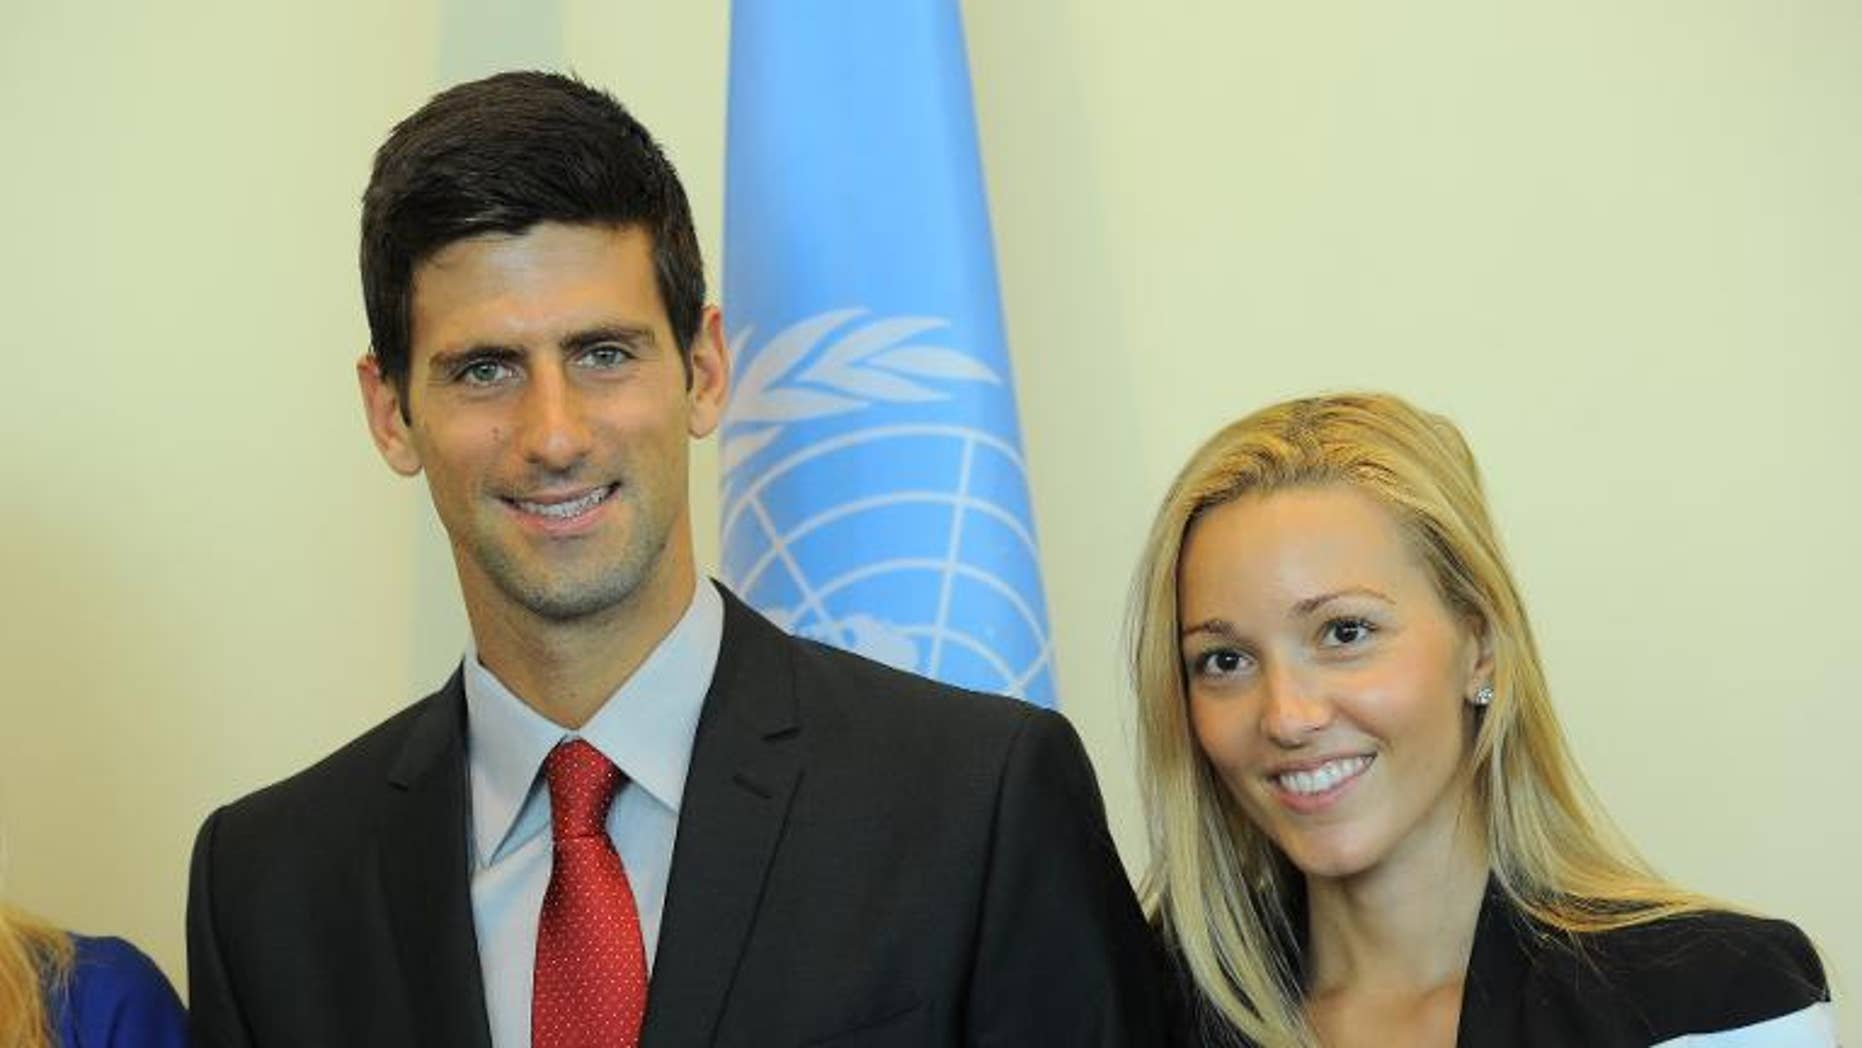 Serbian tennis player Novak Djokovic (L) and his girlfriend Jelena Ristic pose for a photo at the United Nations headquarters in New York, on August 23, 2013.